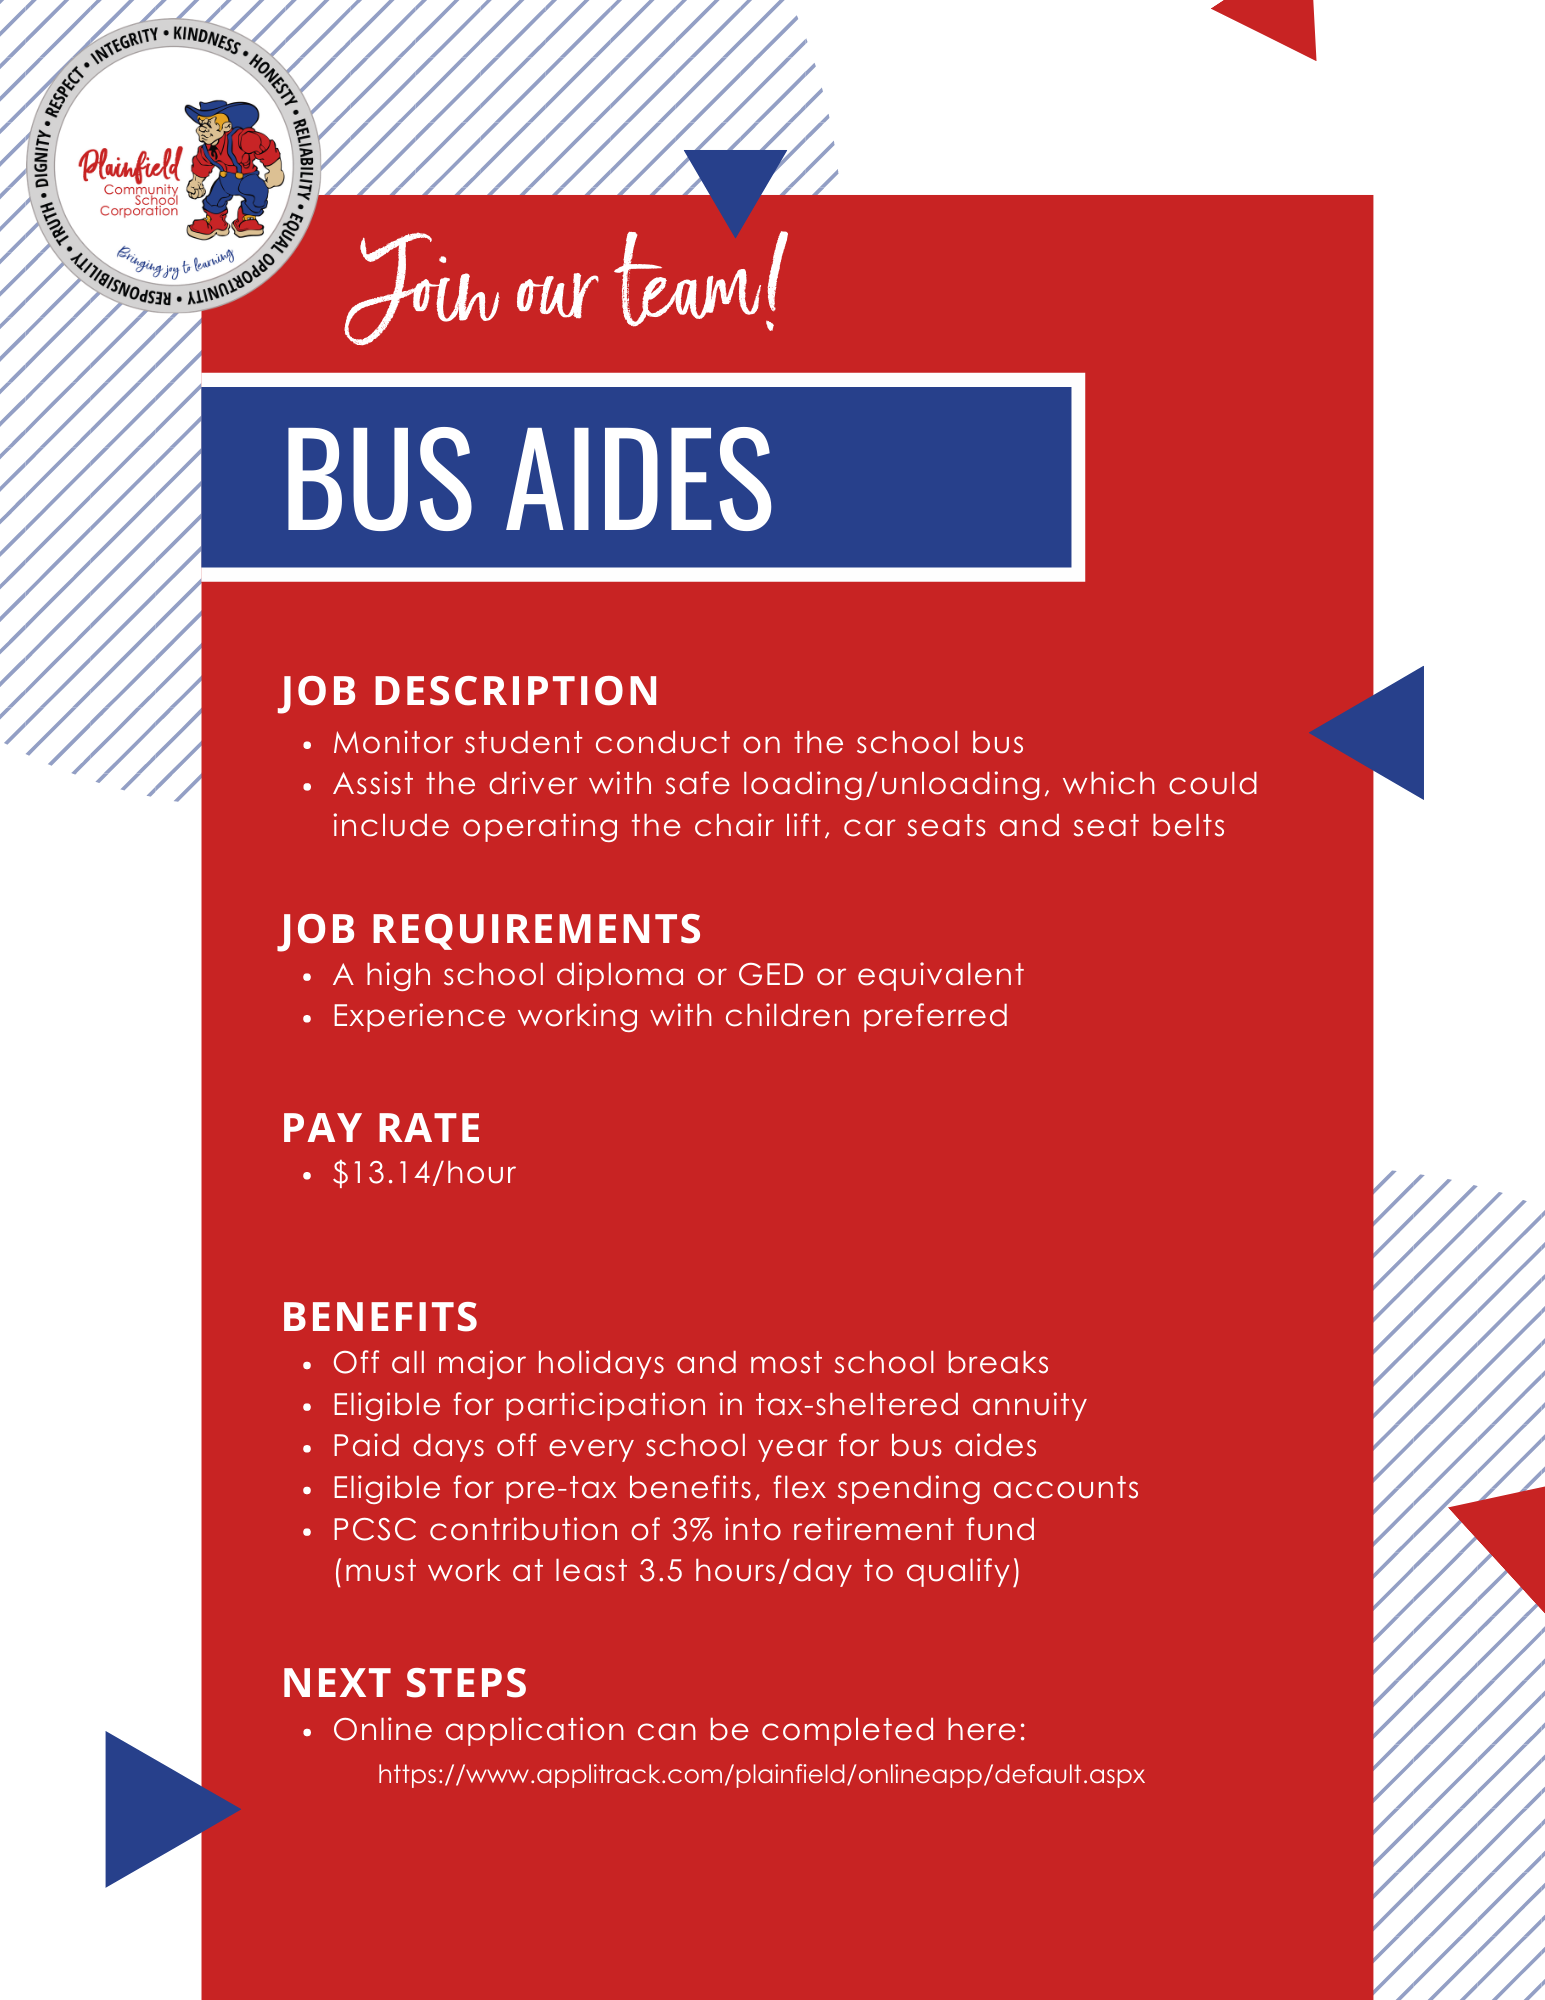 Information about being a Bus Aide with Plainfield Schools